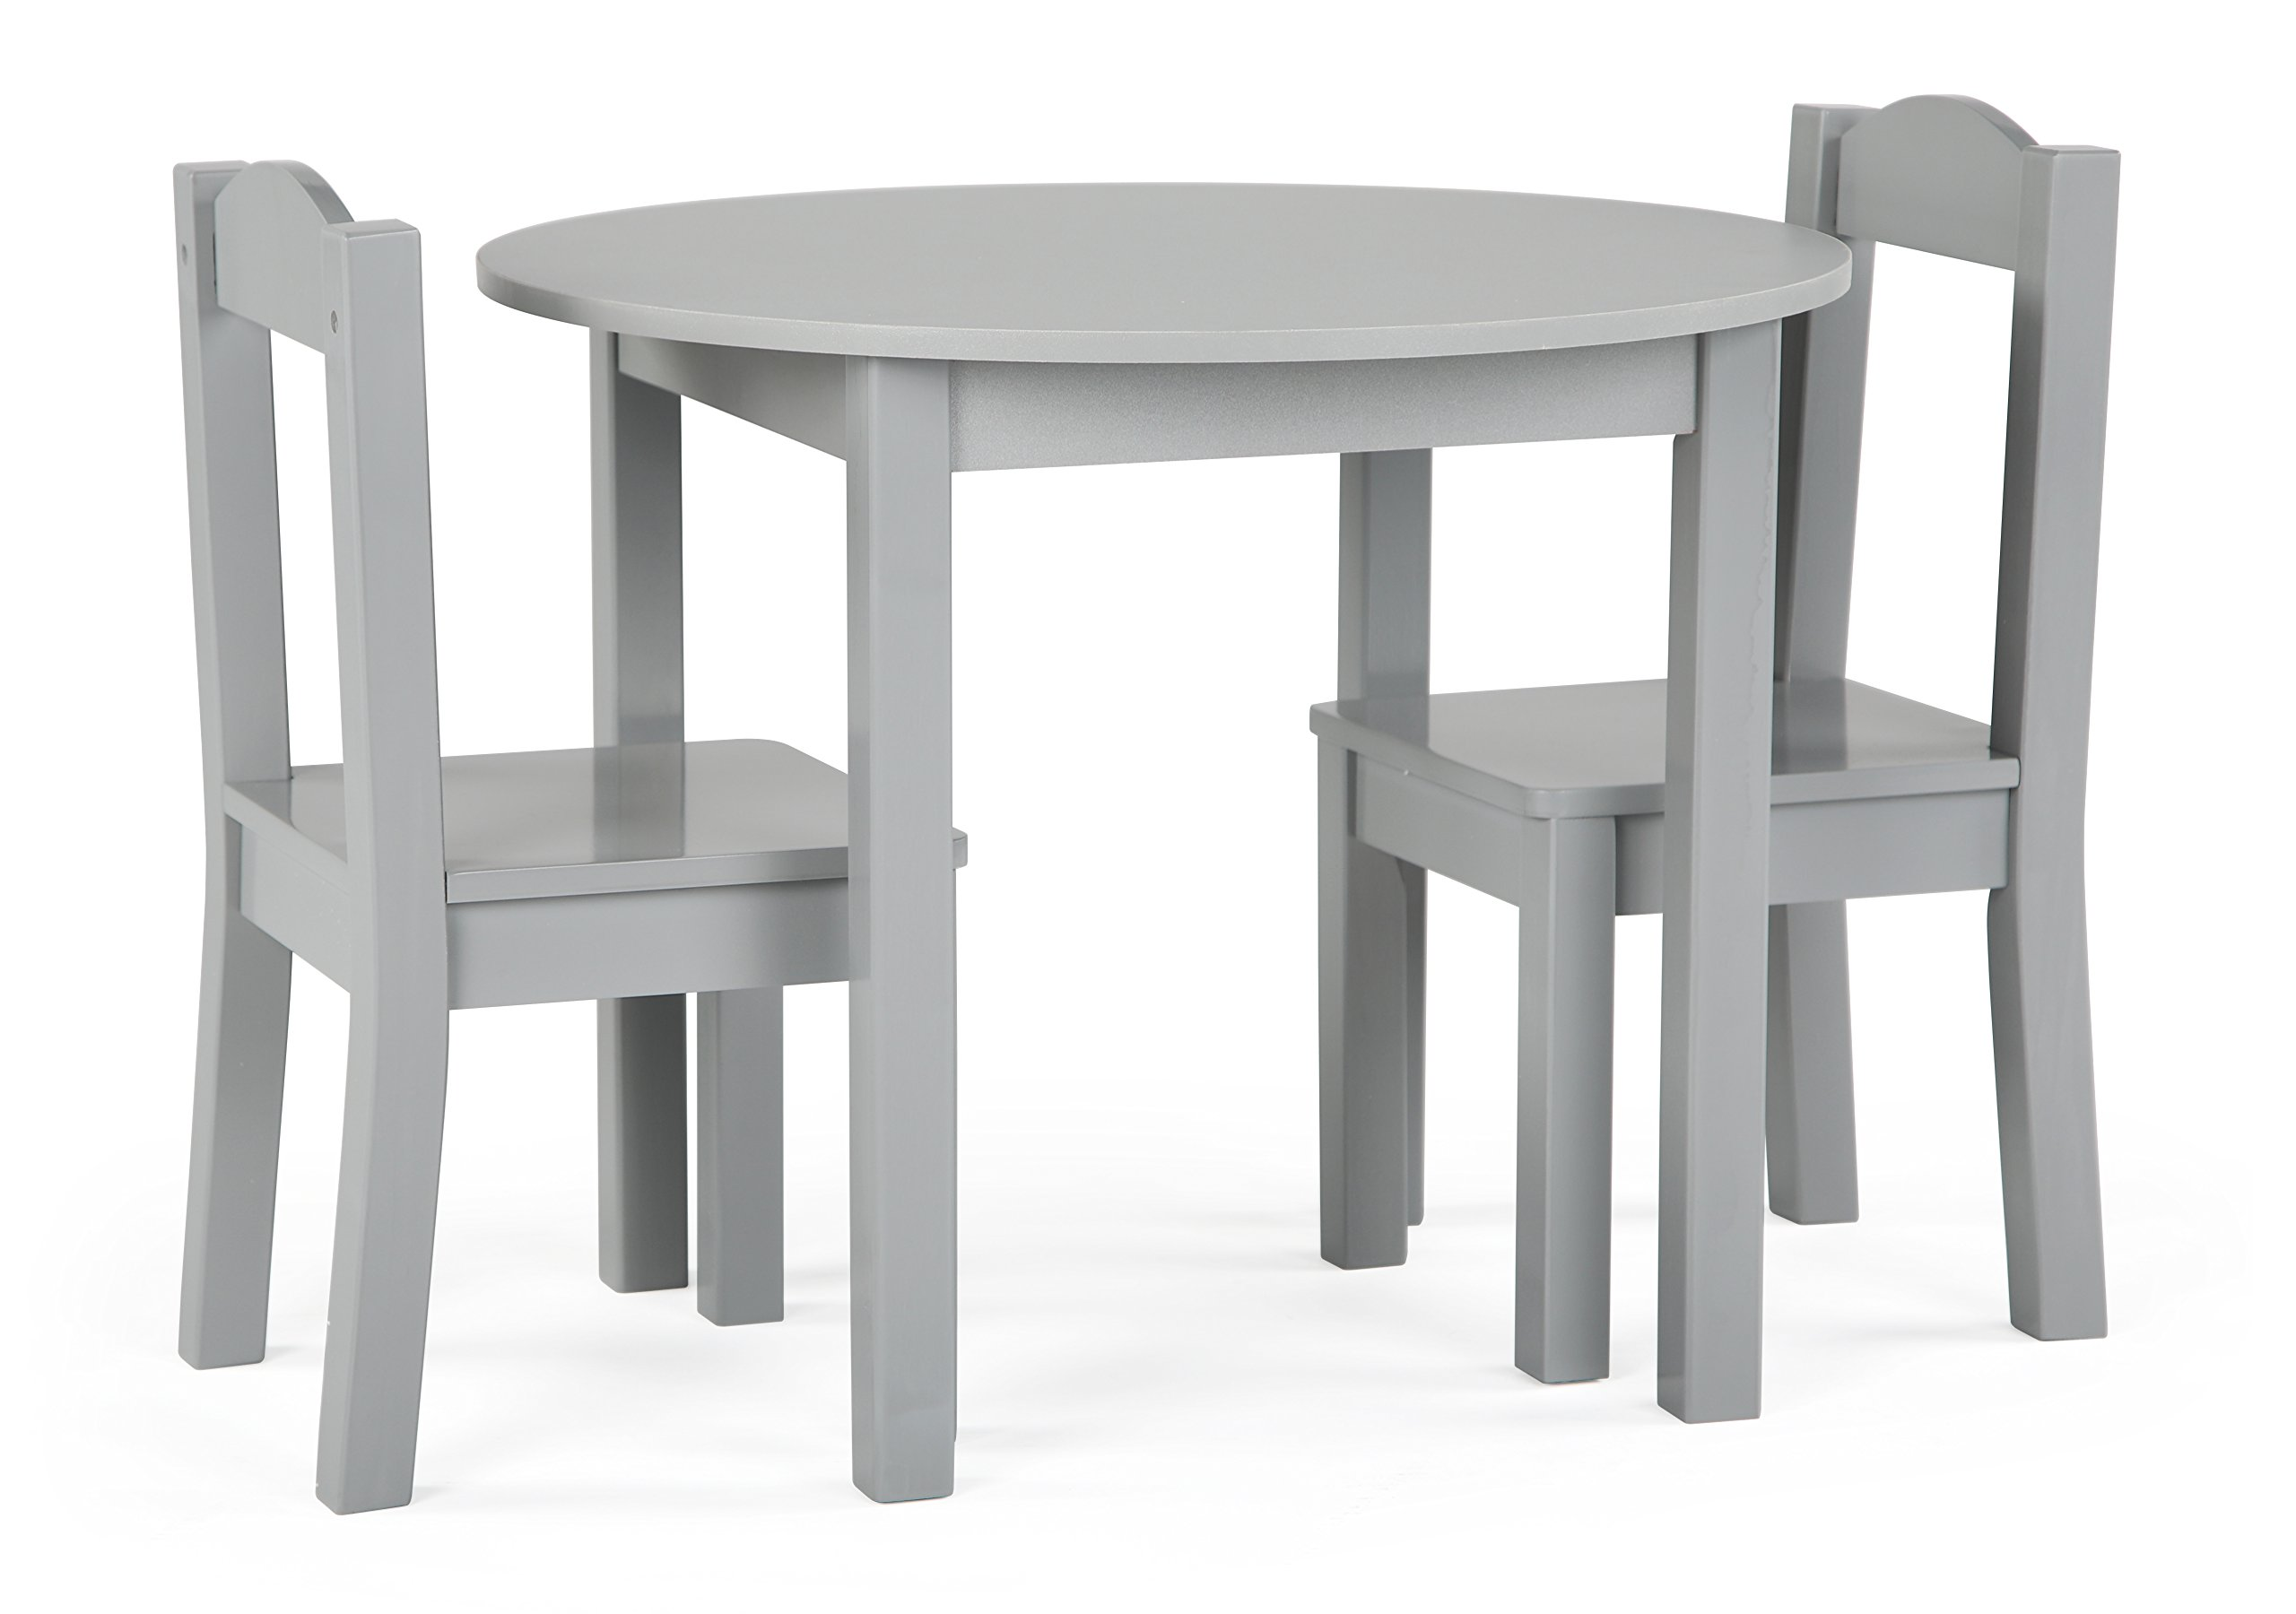 Tot Tutors TC763 Table and Chair, 3-Piece, Grey